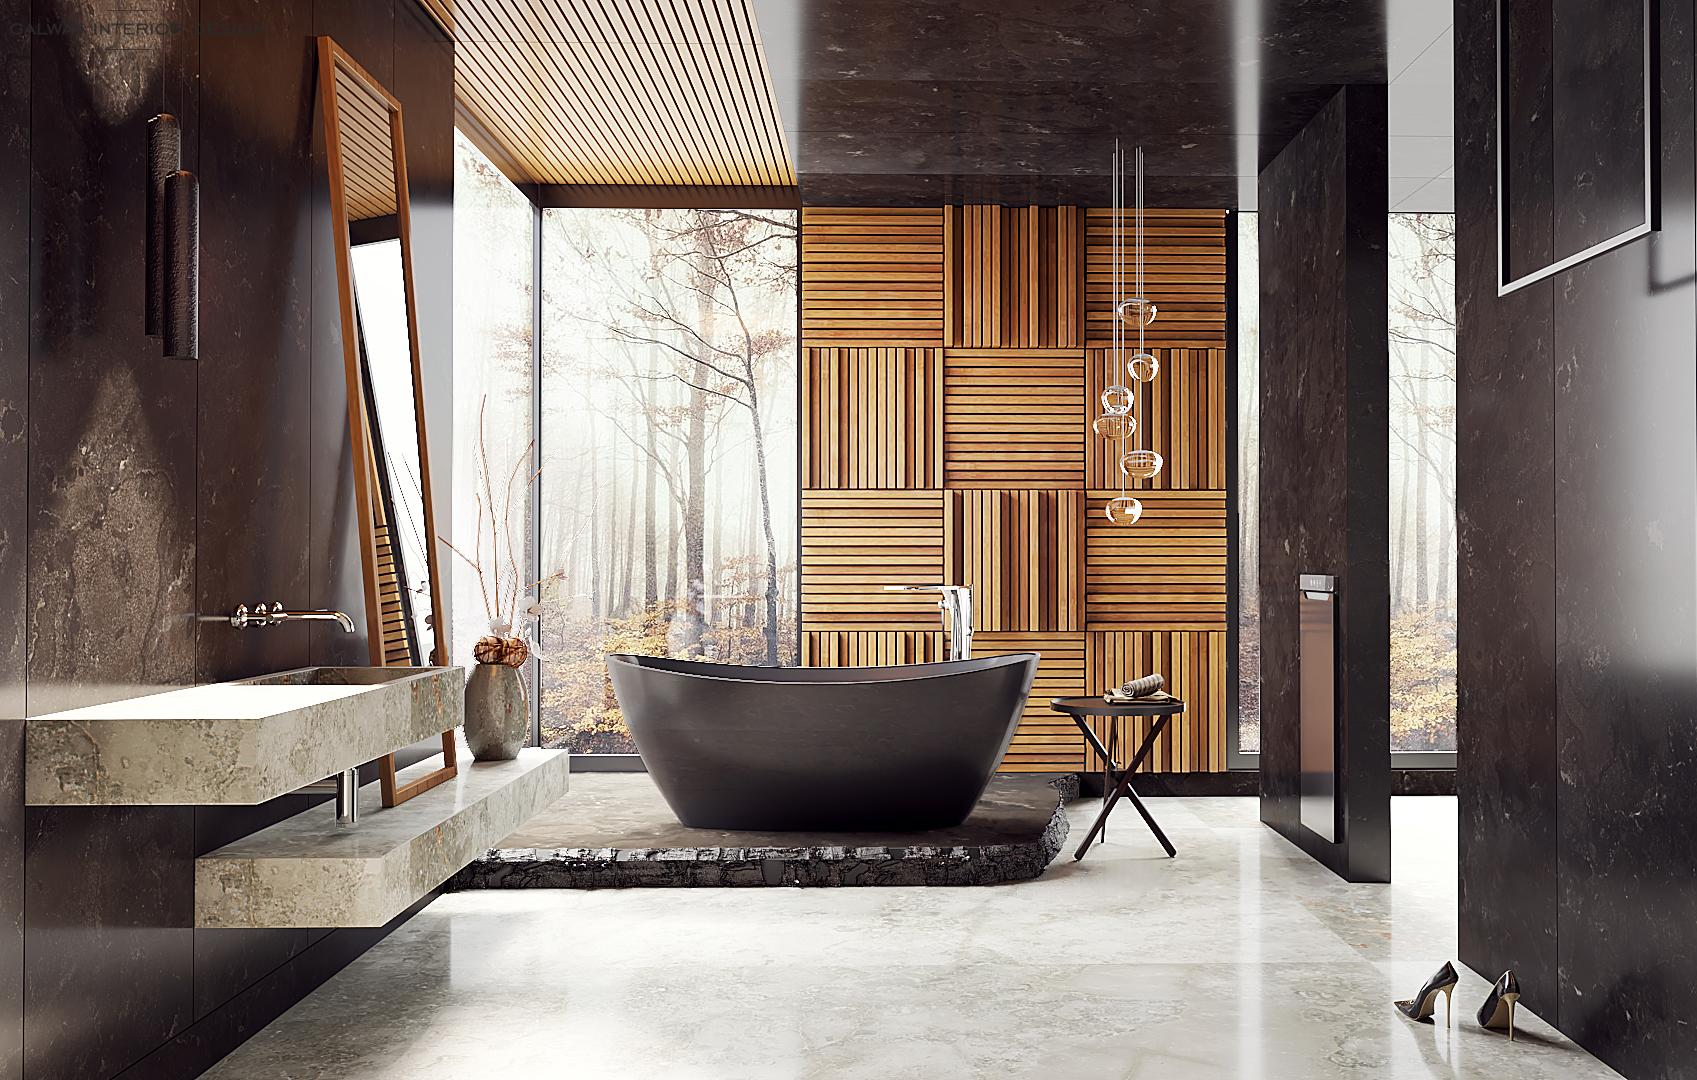 Galway Interior Design - Big Stylish Bathroom